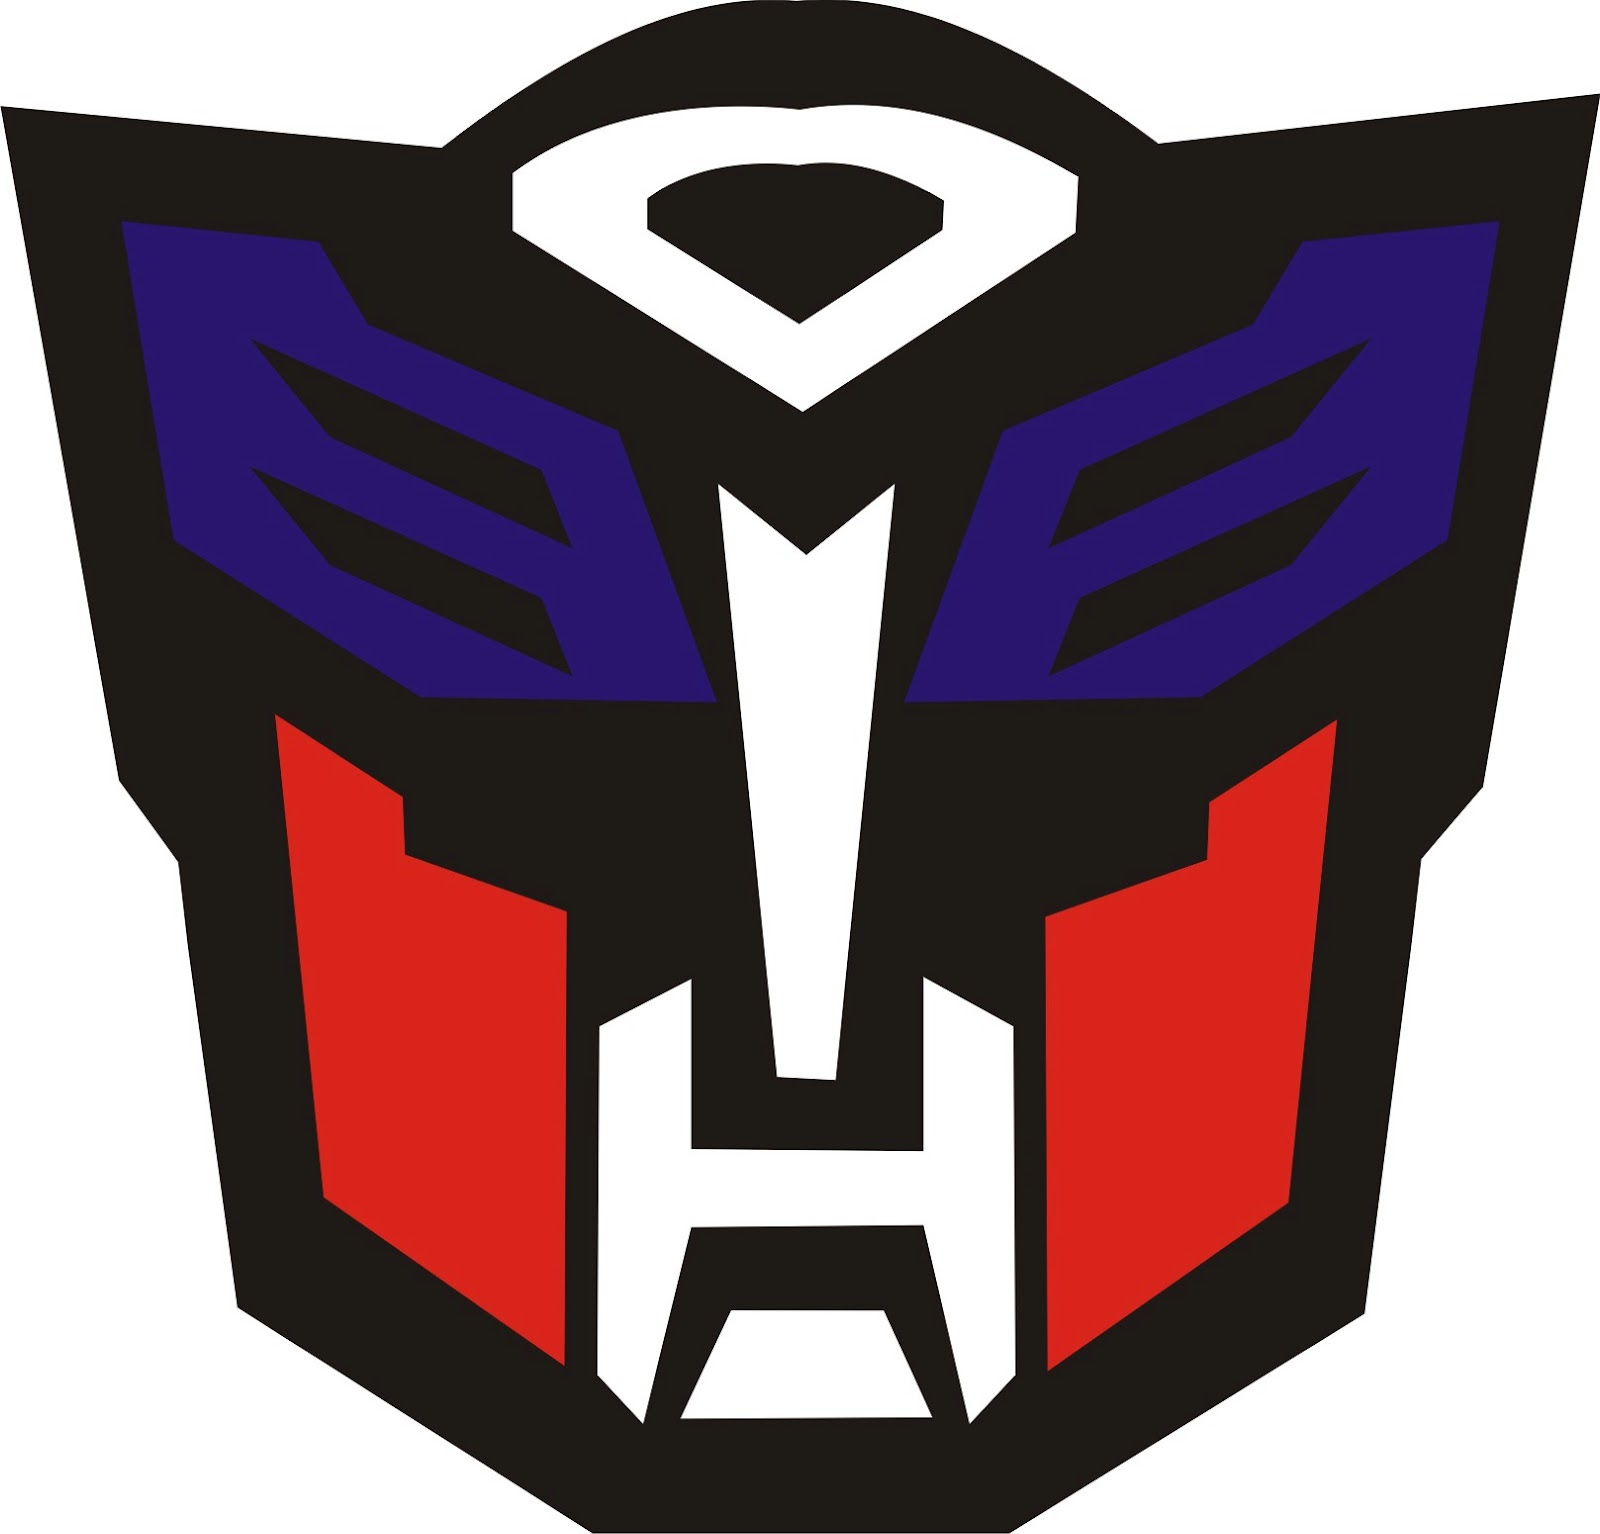 Autobot Logo Vector Version ~ Education, Kpop, Symbian OS.